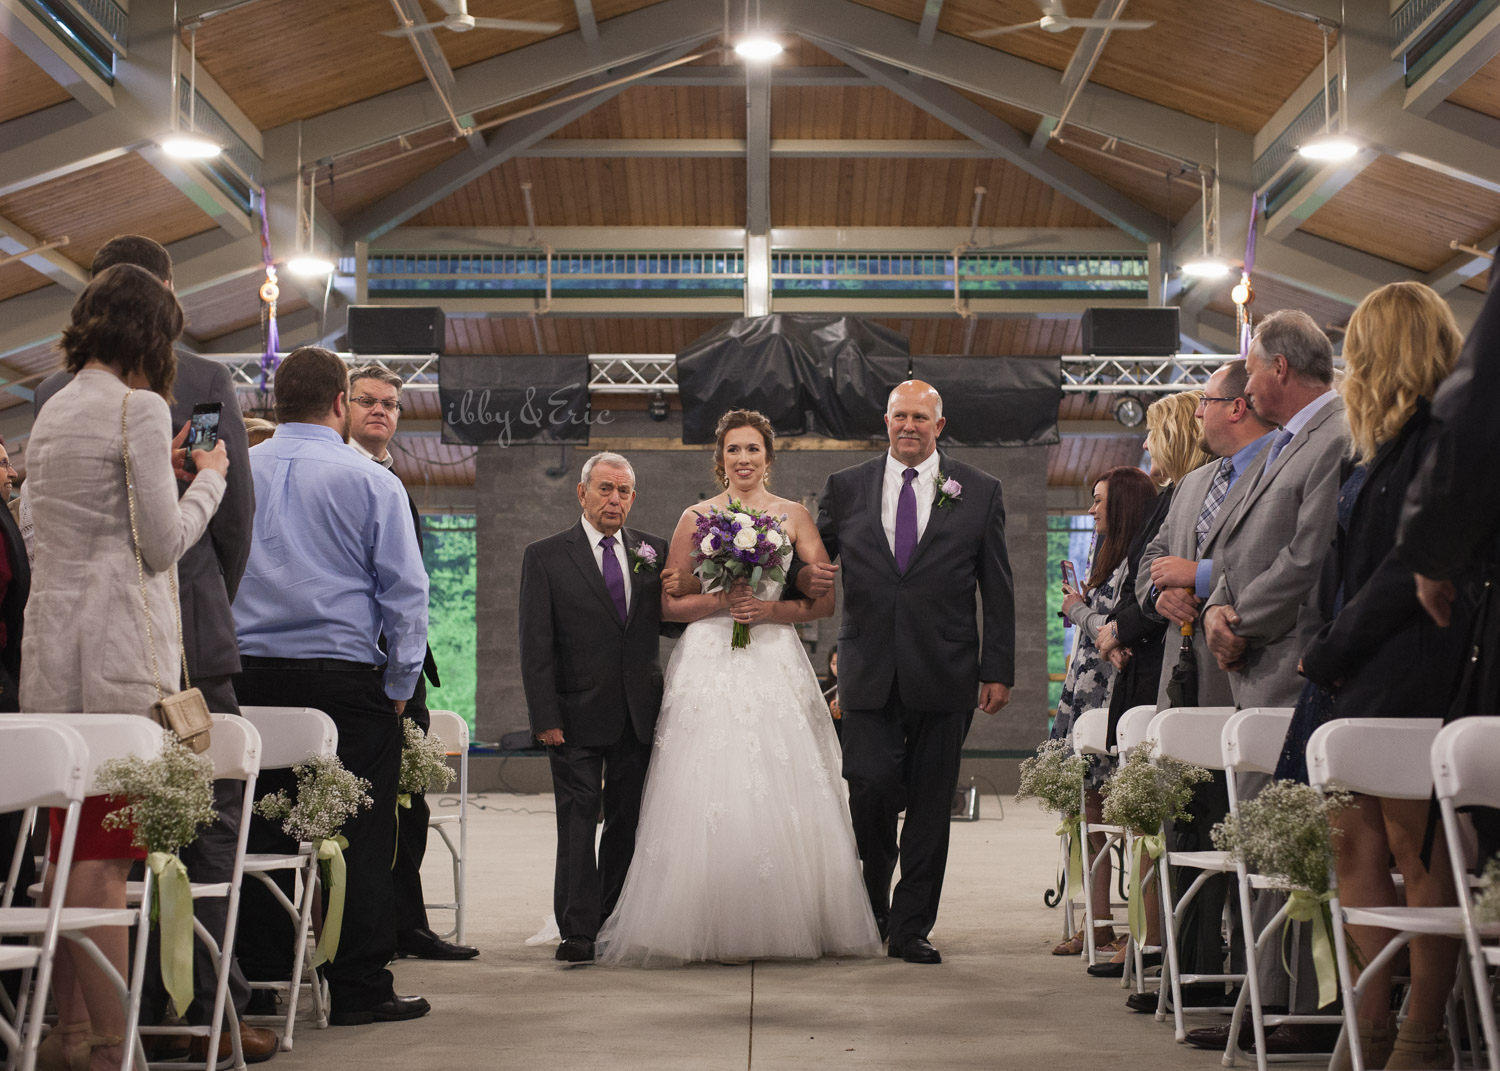 Bride with purple wedding flowers is escorted down the aisle by 2 people, her dad and grandpa.